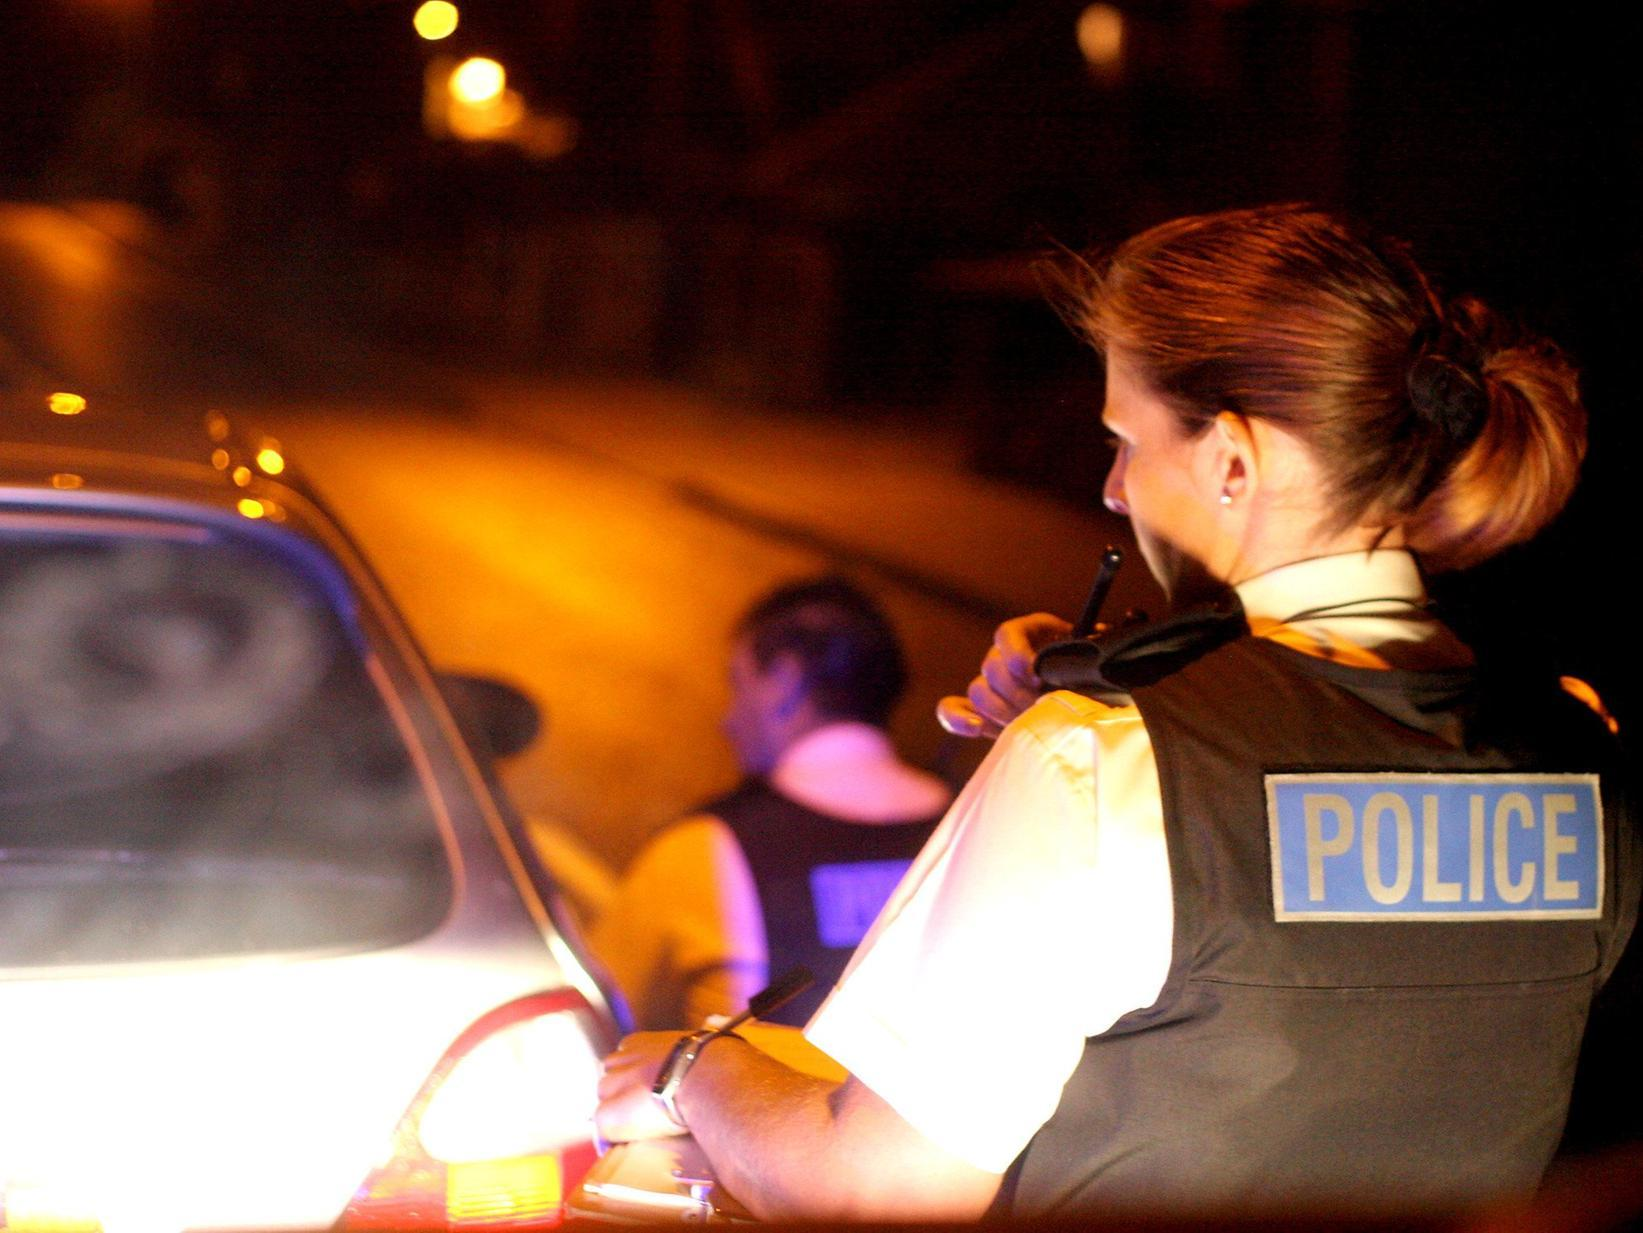 Police operation tackling dangerous drivers answers Halifax community's concerns